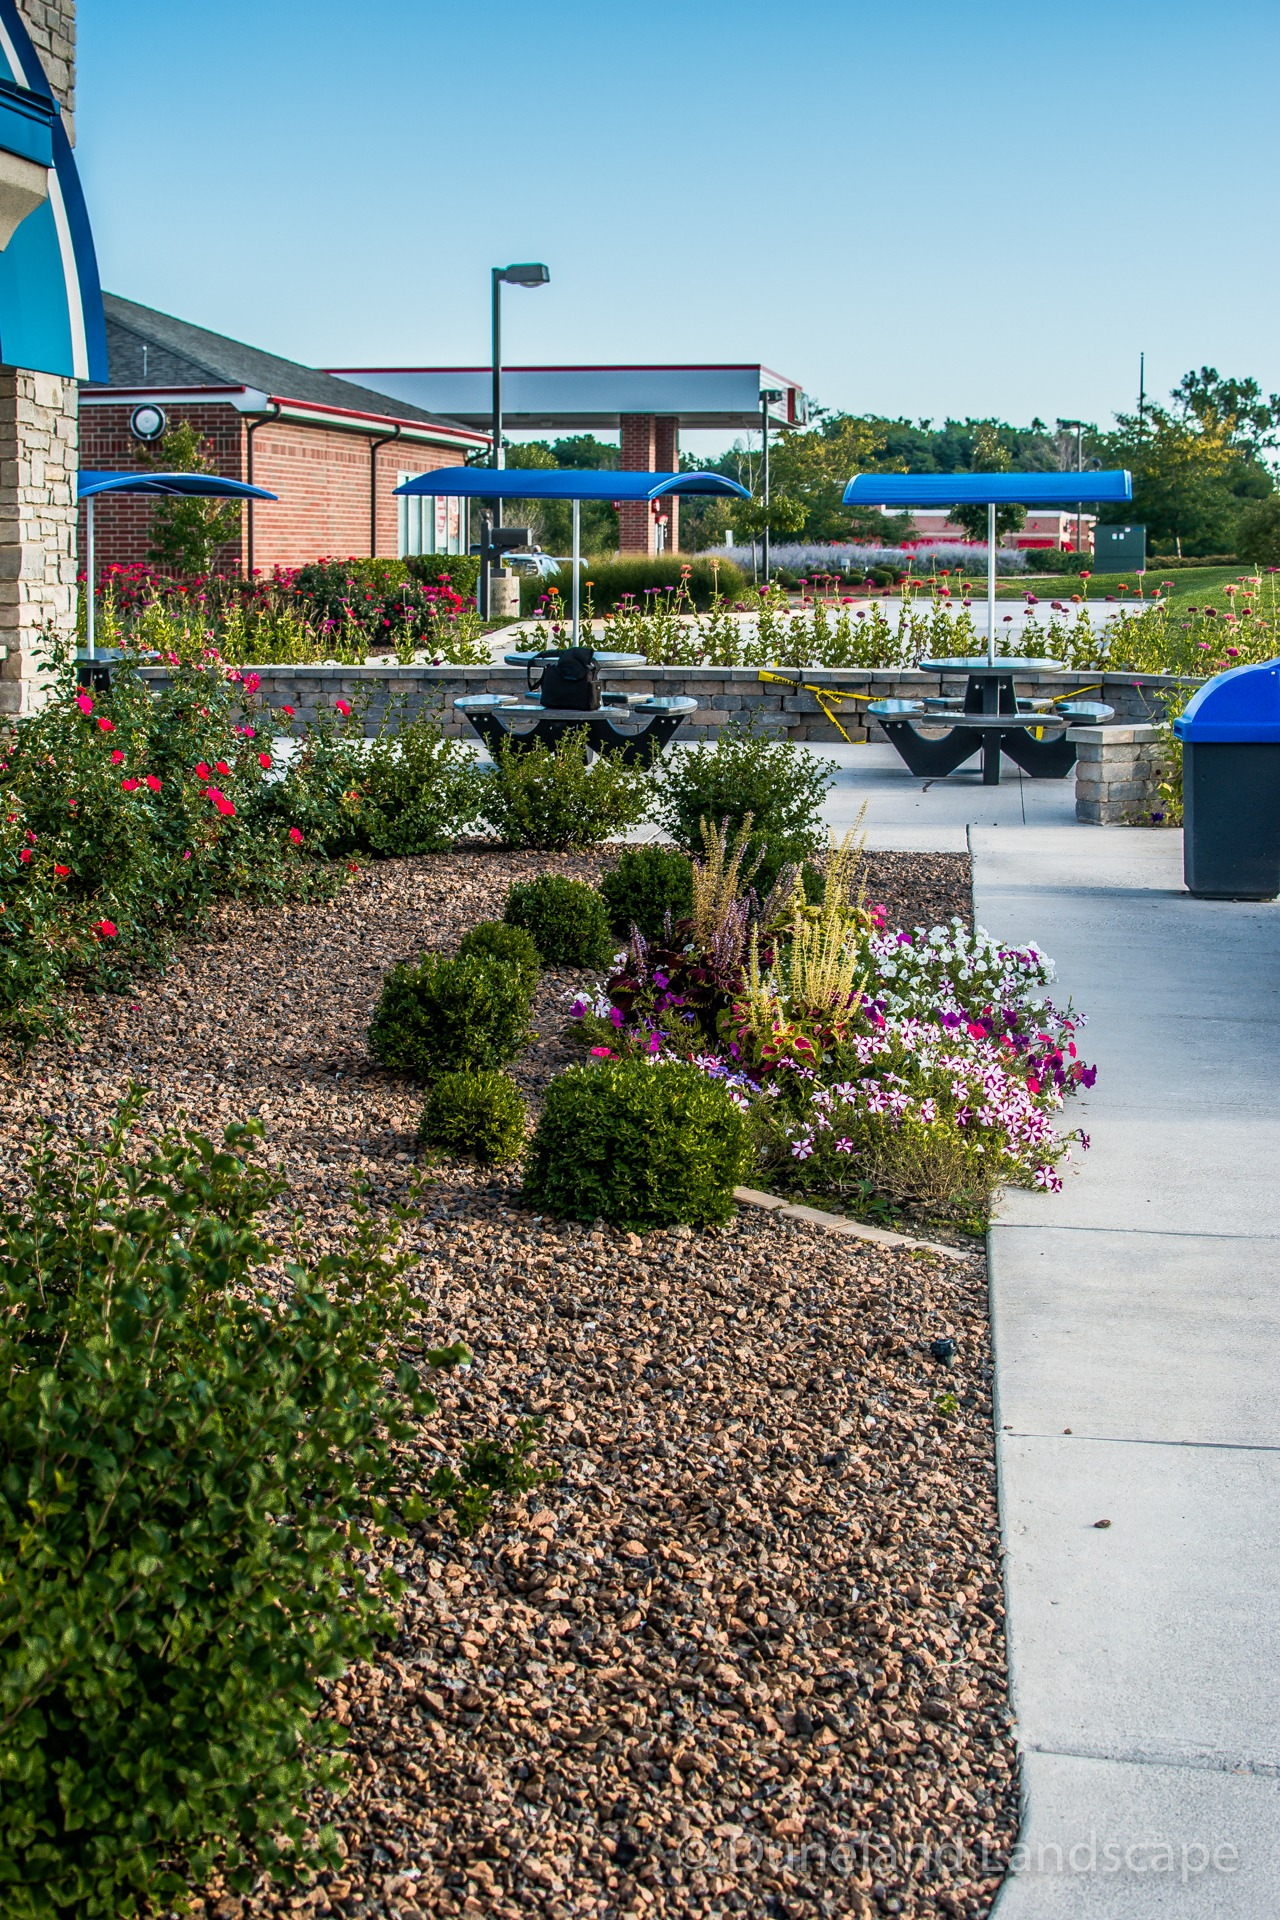 landscaping stones in flower bed